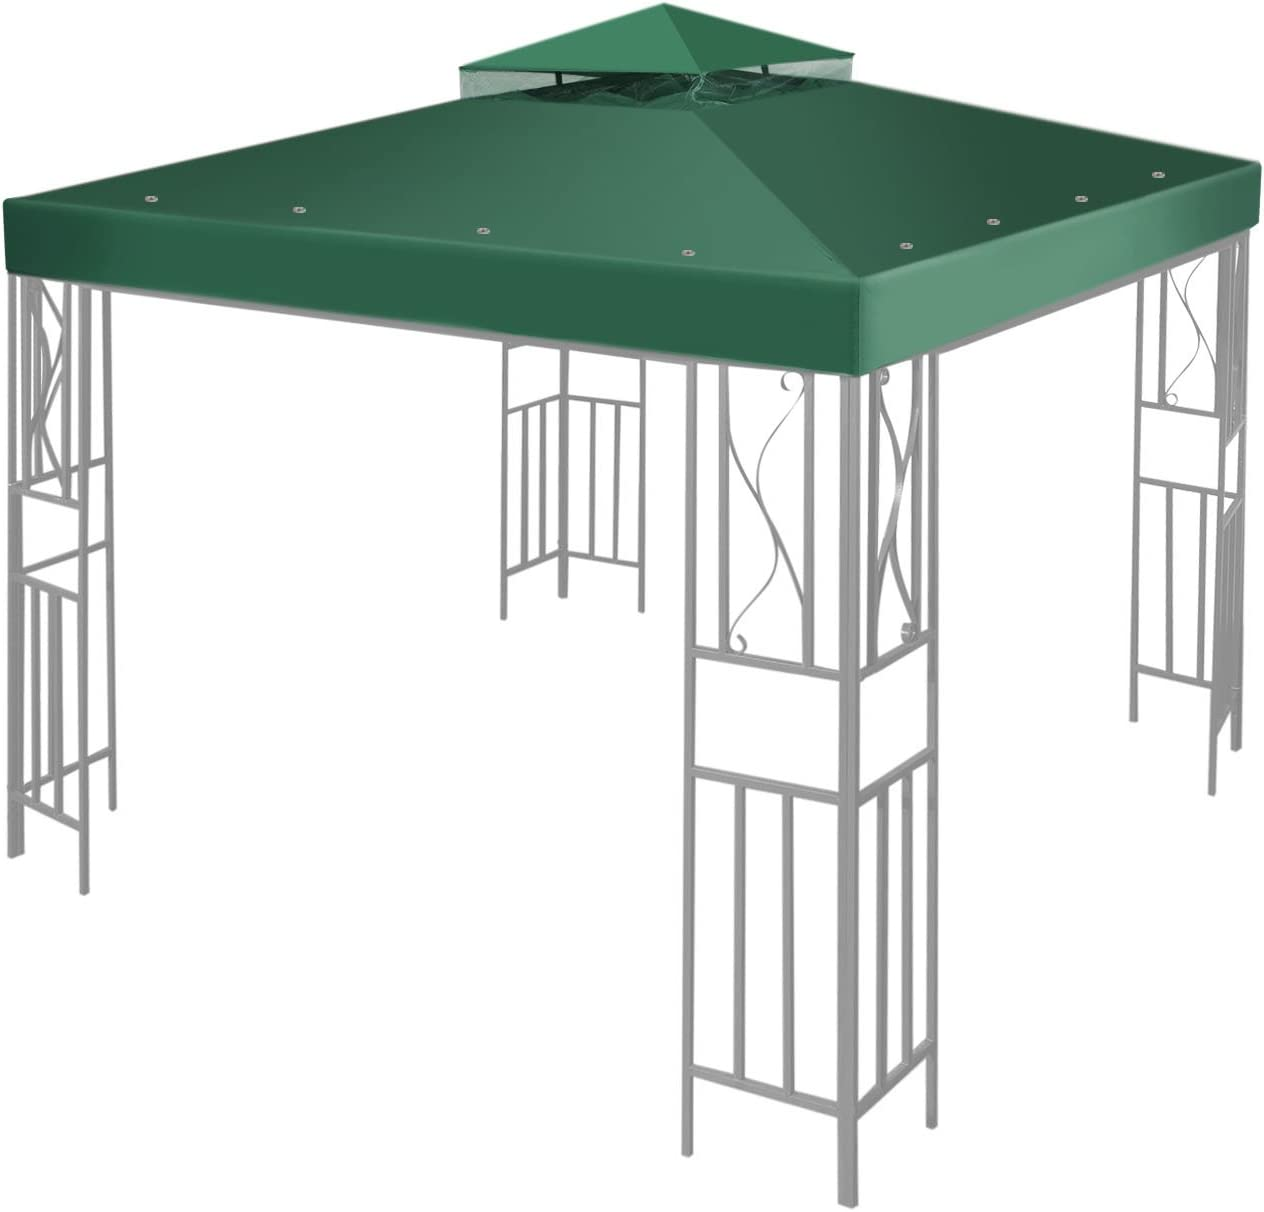 Flexzion 8' x 8' Gazebo Canopy Top Replacement Cover (Green) - Dual Tier Up Tent Accessory with Plain Edge Polyester UV30 Protection Water Resistant for Outdoor Patio Backyard Garden Lawn Sun Shade